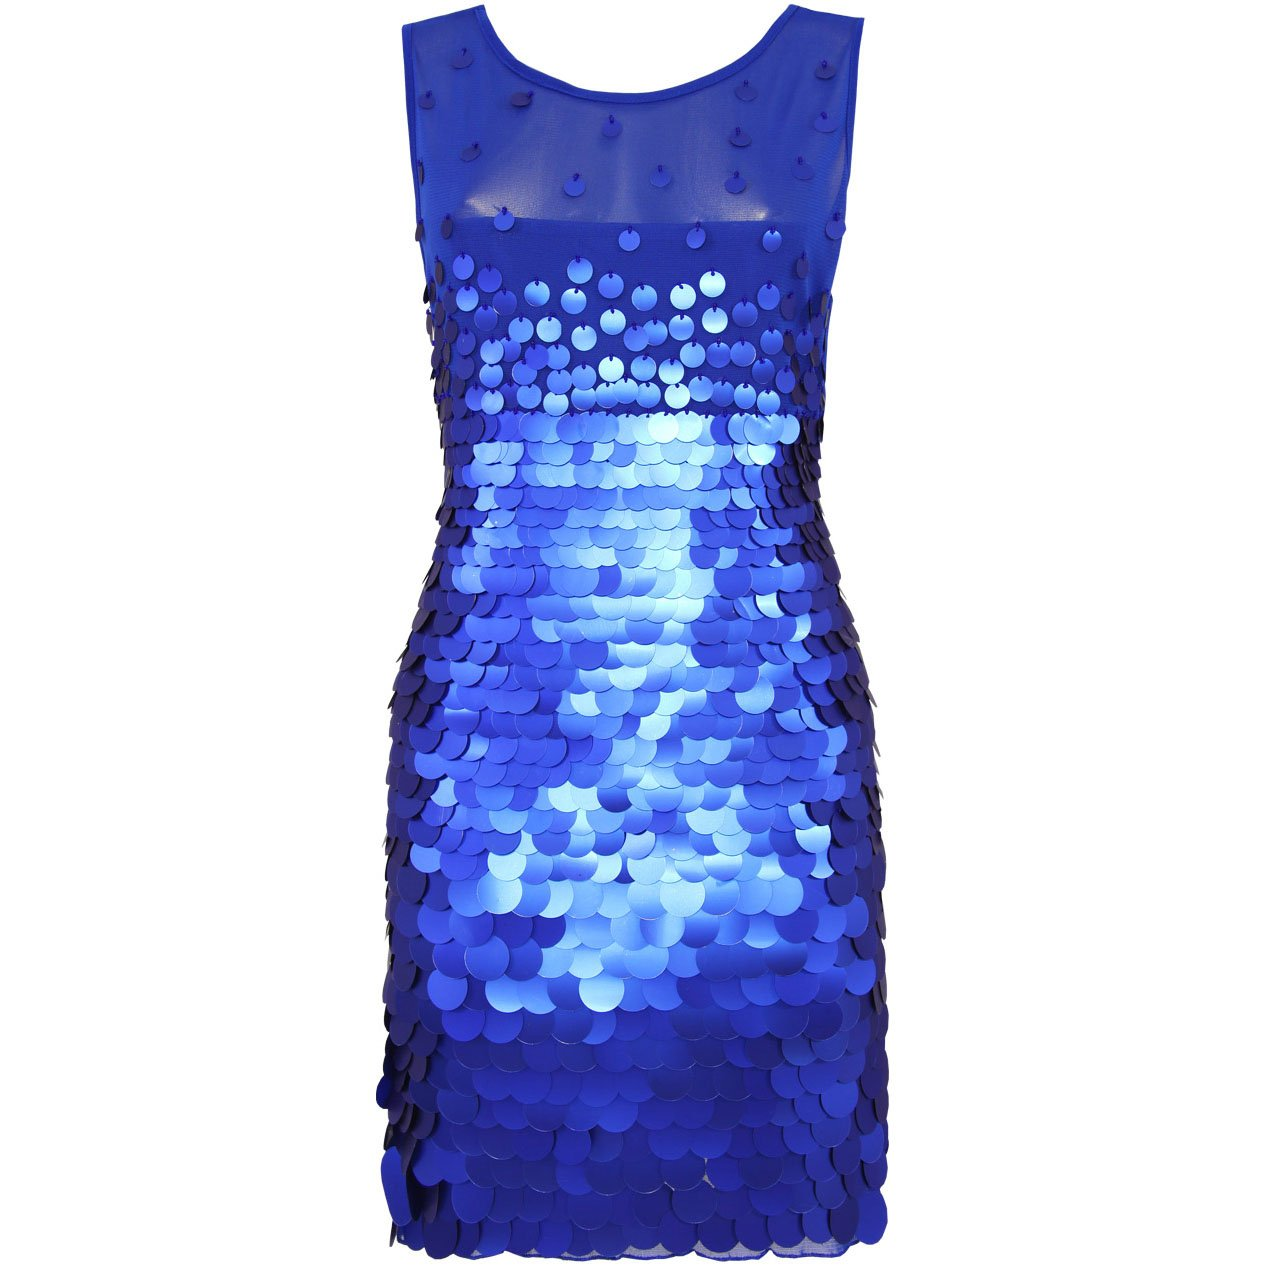 BLUE SEQUIN MESH BODYCON EVENING MINI COCKTAIL CLUBWEAR PARTY PROM DRESS UK SIZE 10-12, US SIZE 6-8